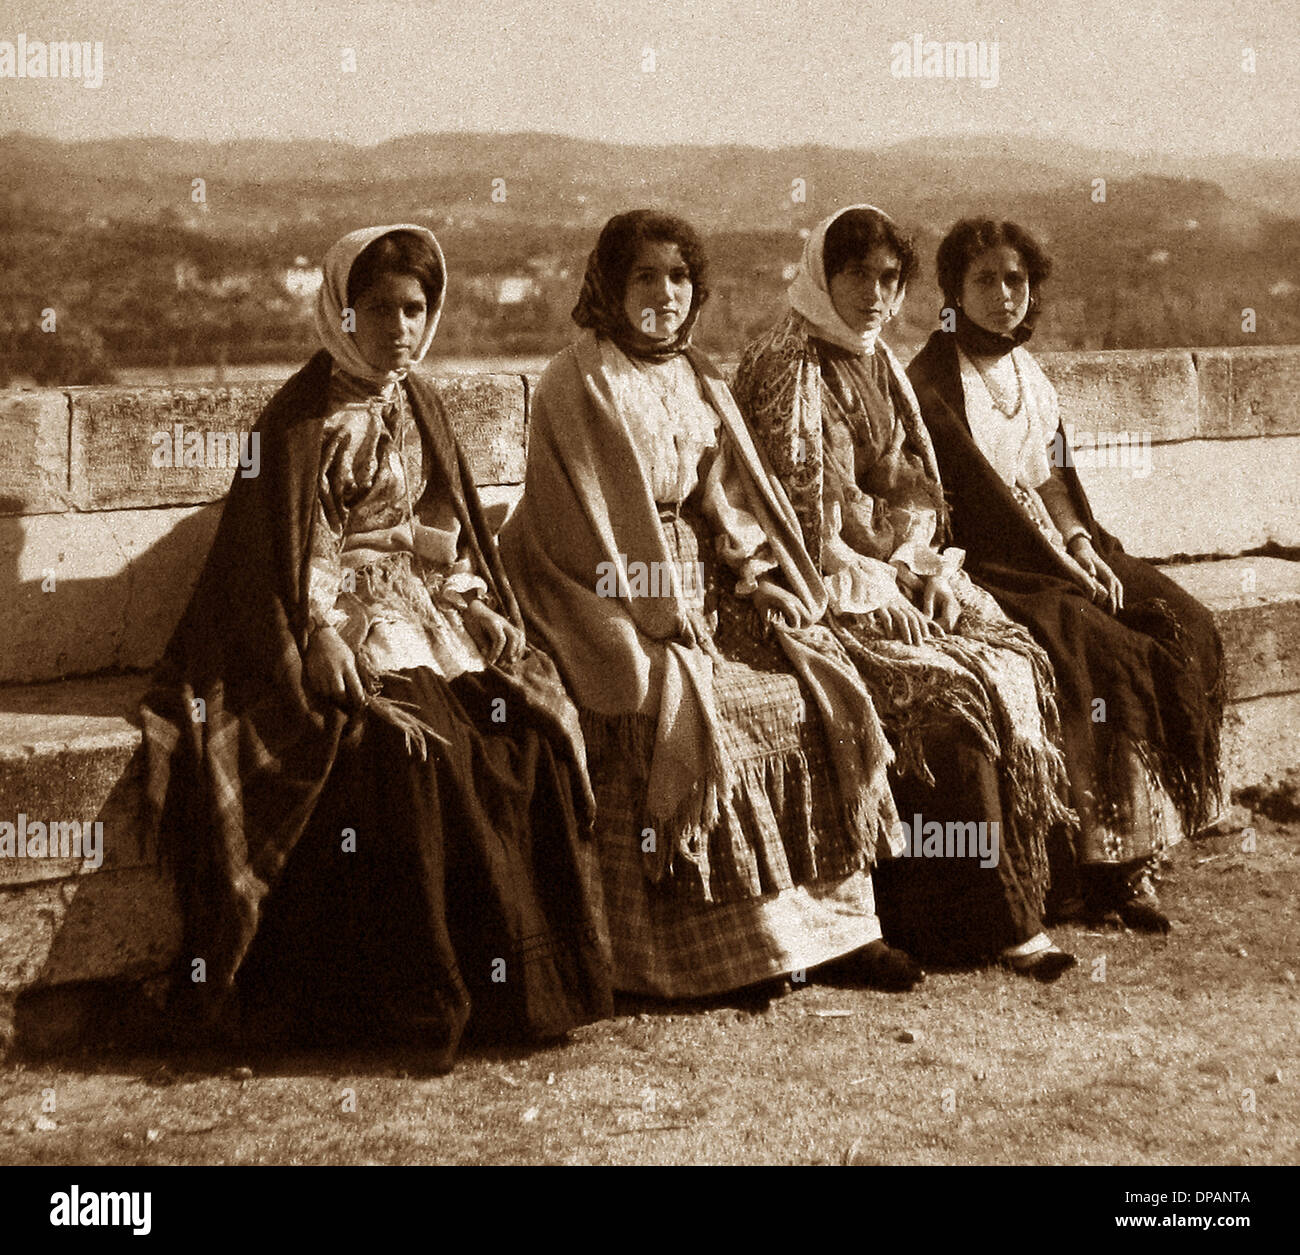 Portugal Tricanas in Coimbra in 1909 - Stock Image